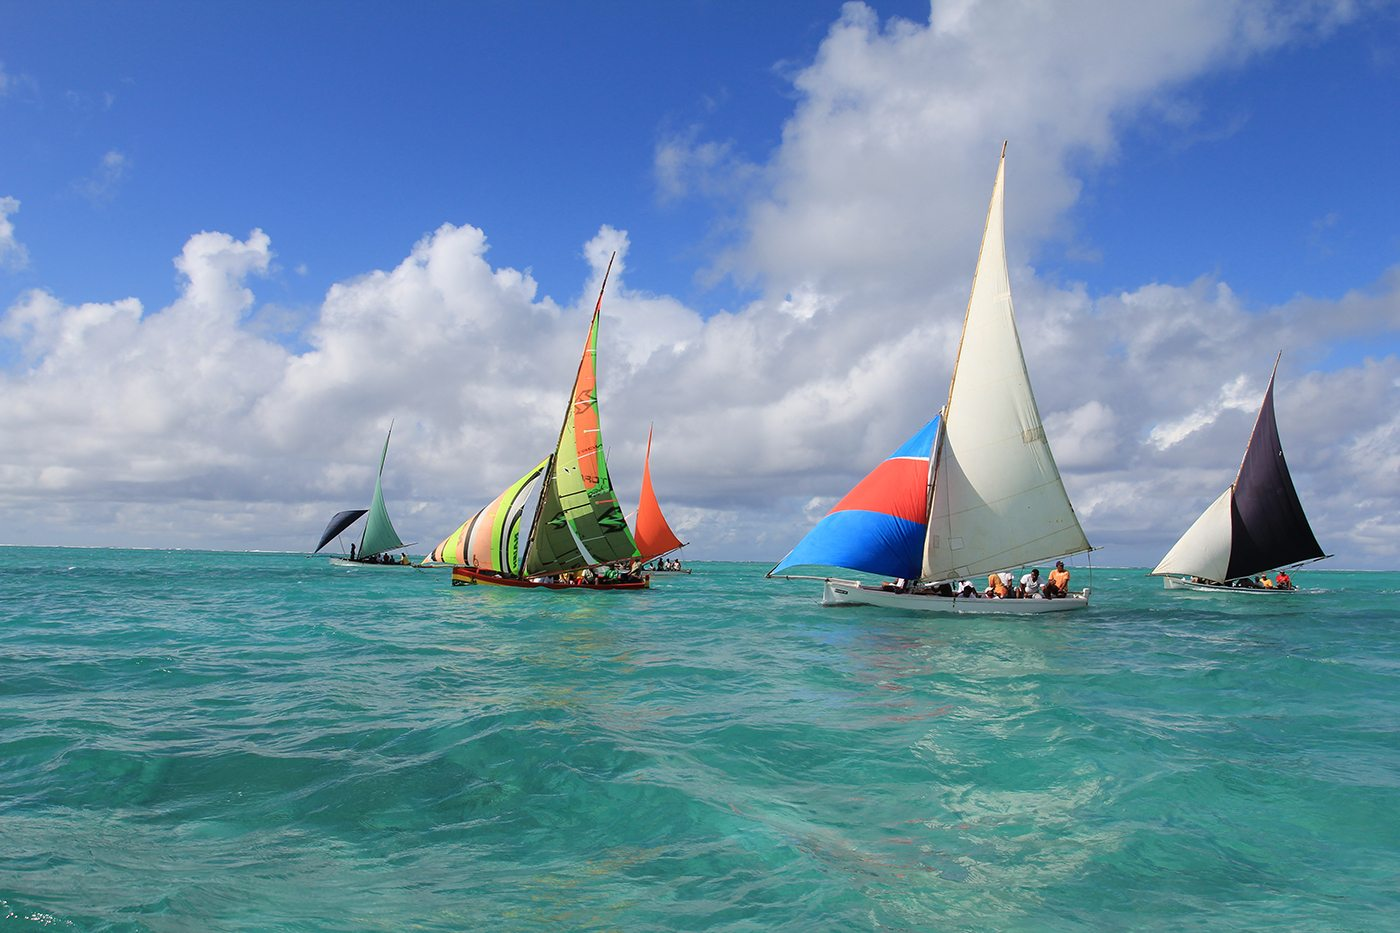 traditionalsailingboats